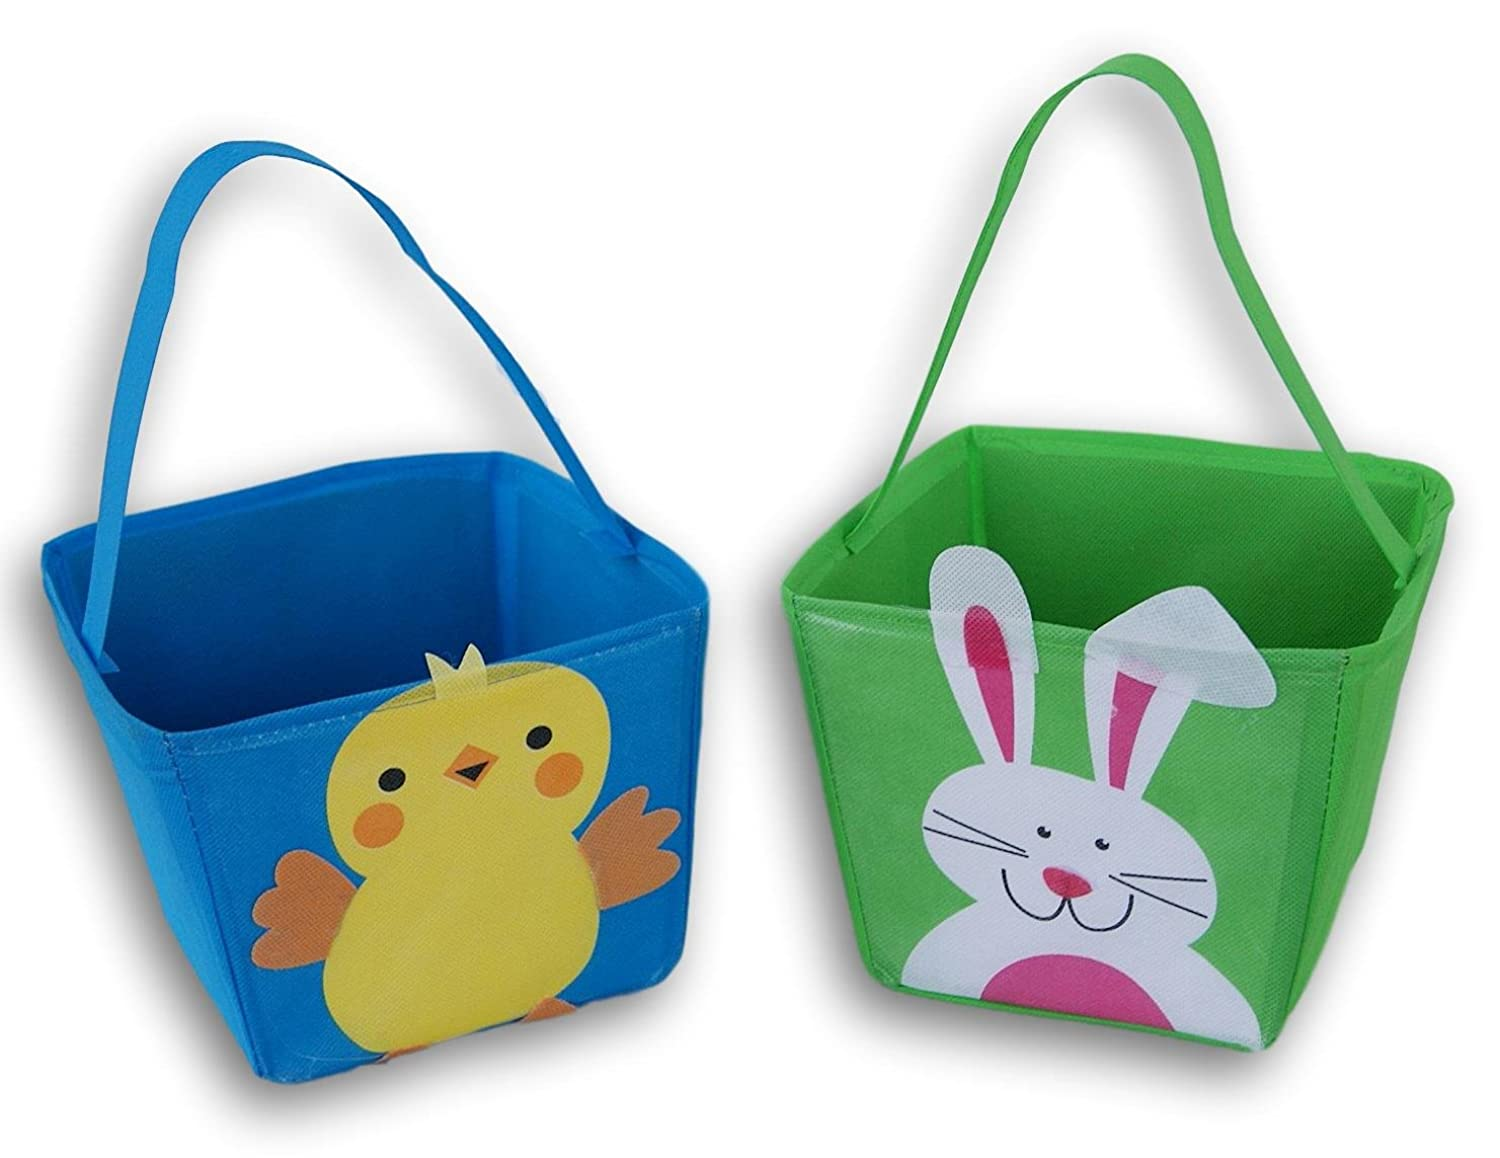 Chick and Bunny Fabric Easter Basket Bucket - 2 Count